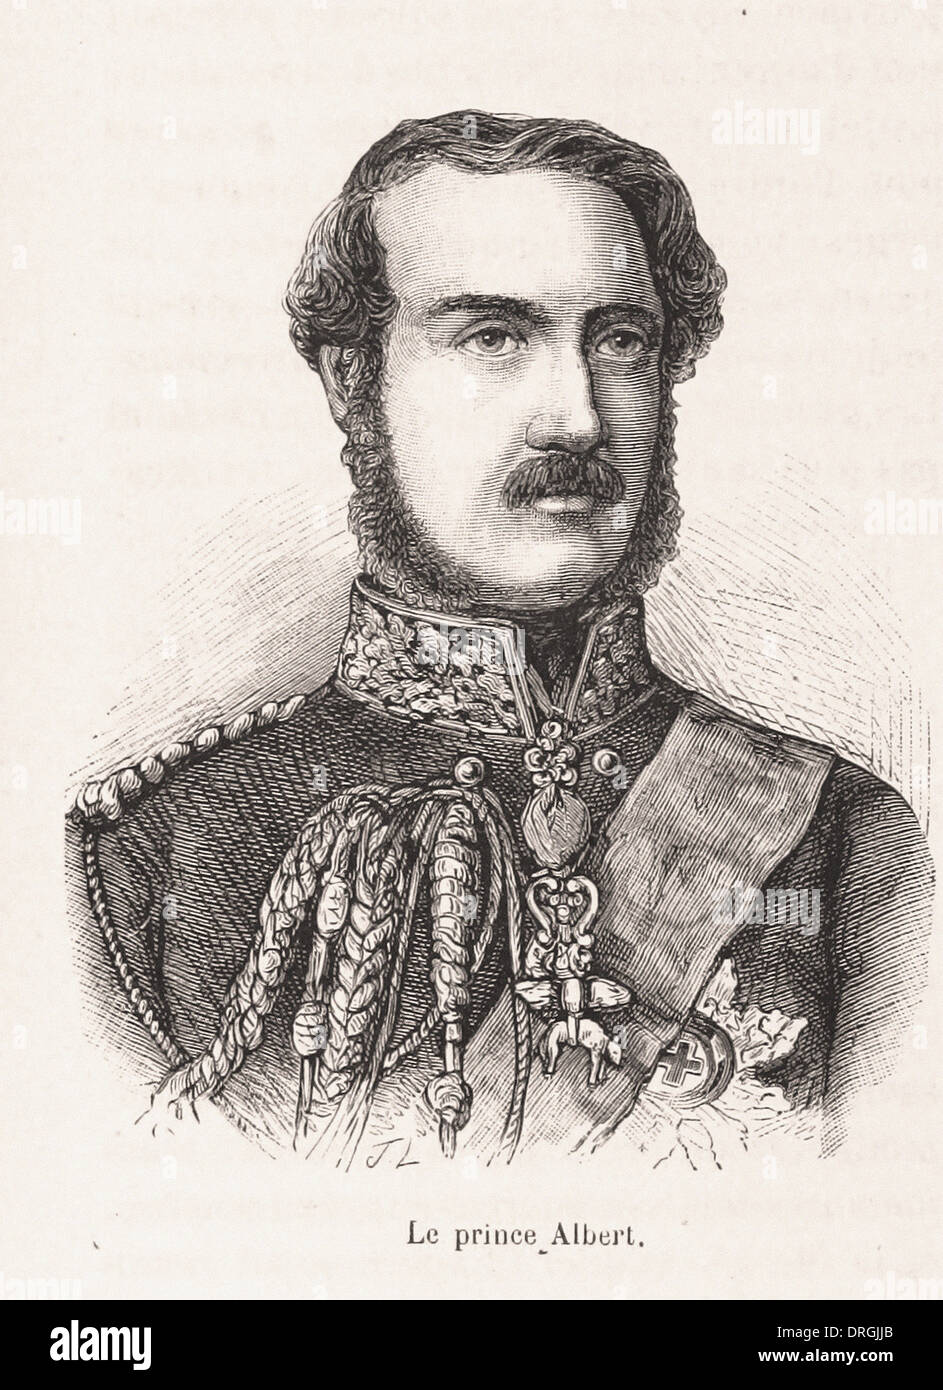 Portrait of Prince Albert - French engraving XIX th century - Stock Image